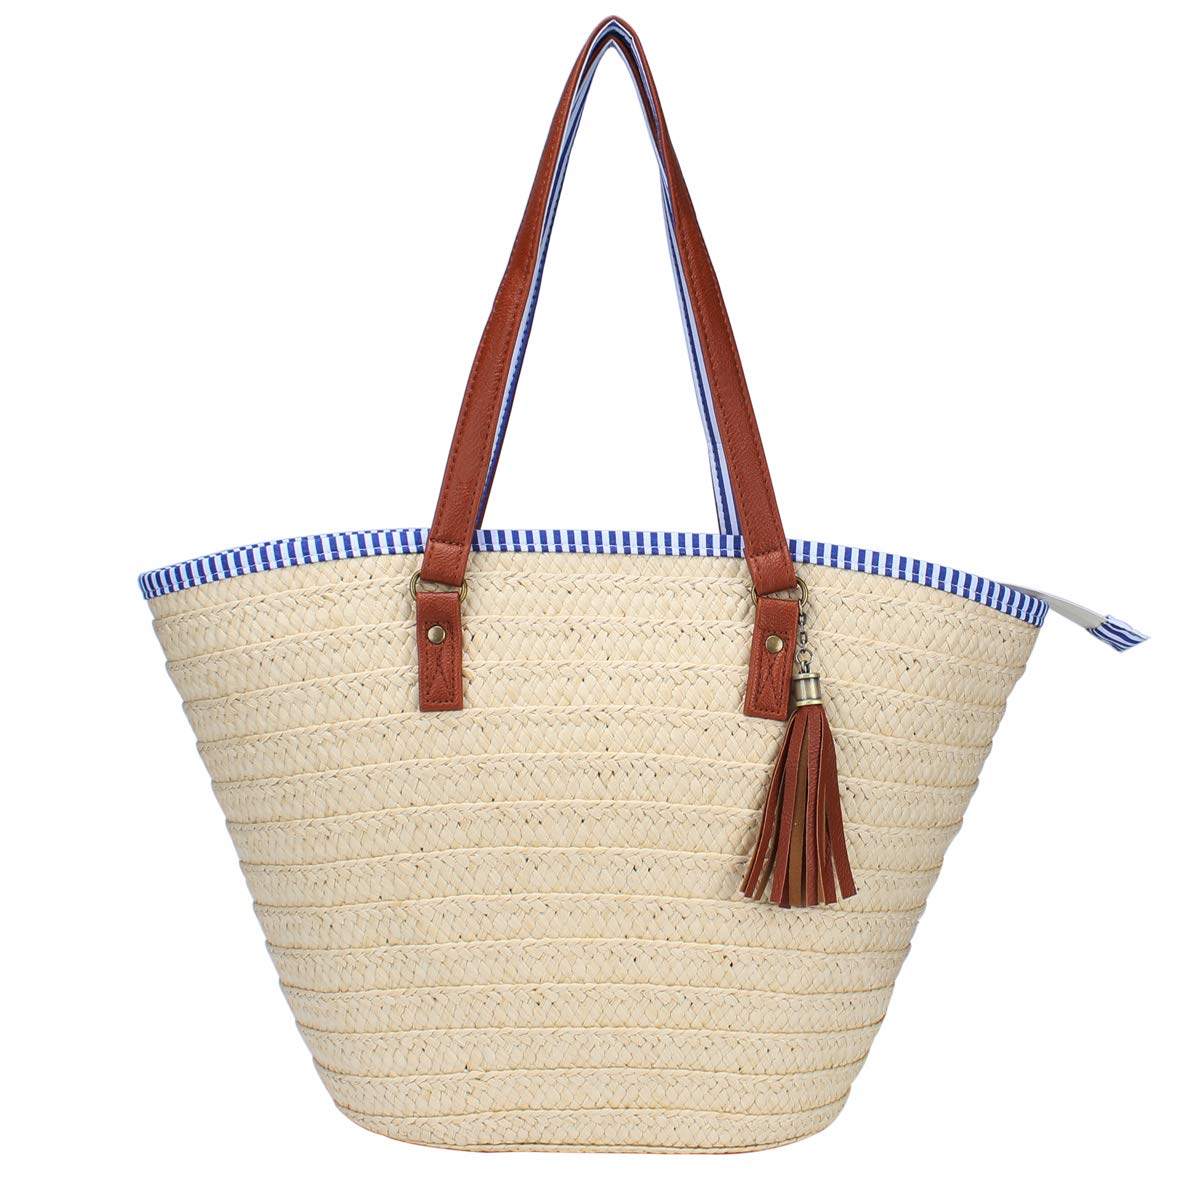 Sornean Straw Beach Bag Handbags Shoulder Bag Tote,Cotton Lining,PU Leather Handle-Eco Friendly (Off White)